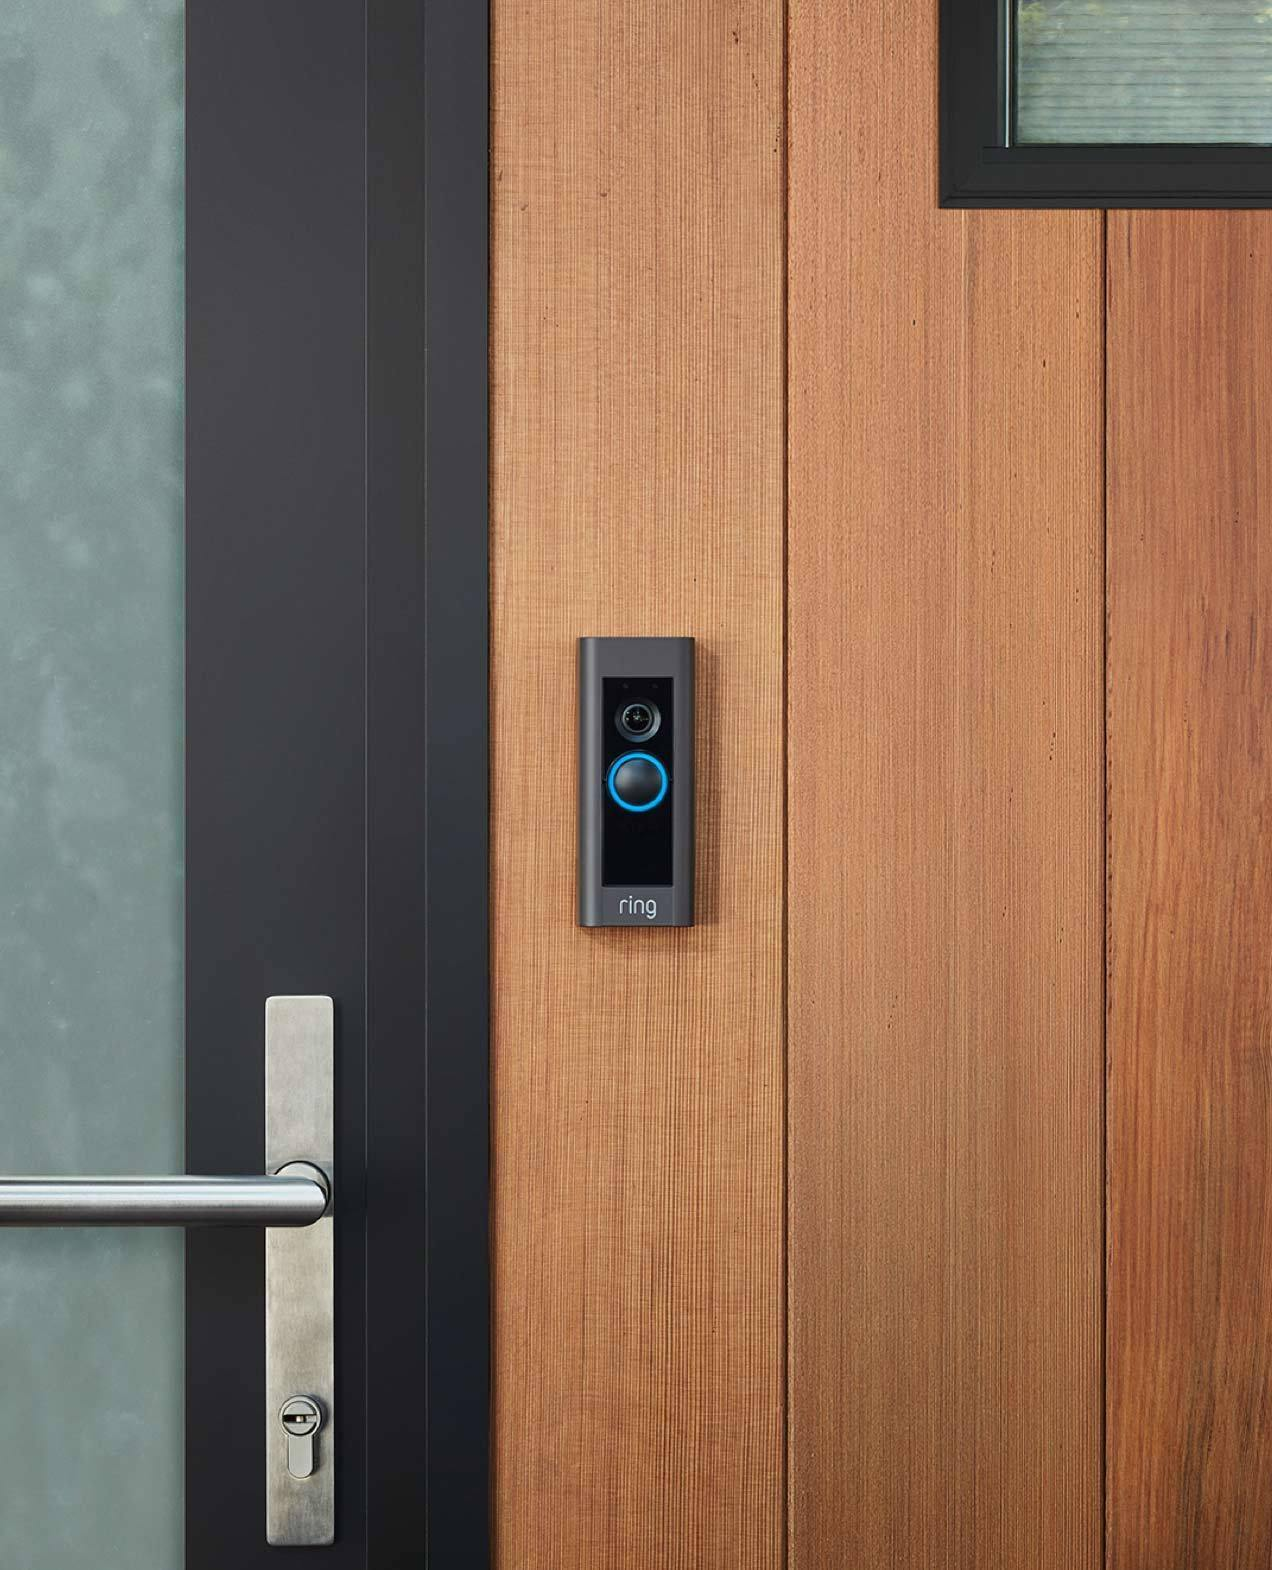 Digitalhome Design:  DigitalHome Smart WiFi Video Doorbell Digitalhome .ph